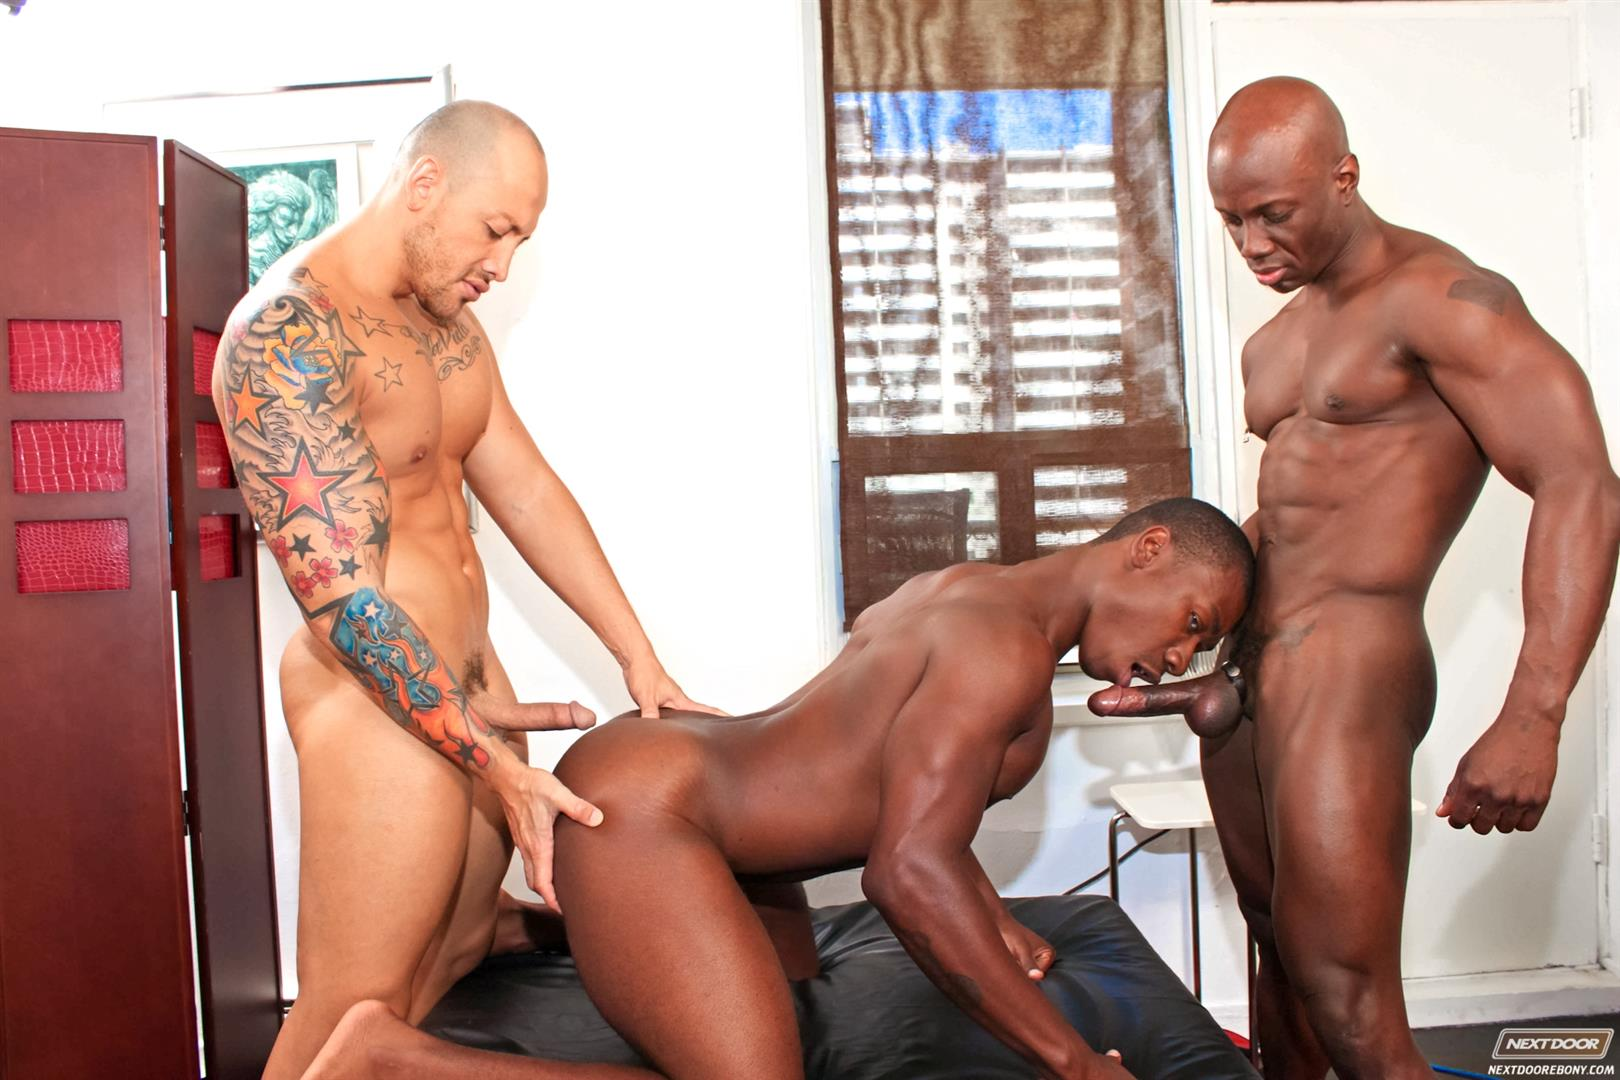 Next-Door-Ebony-Jordano-Santoro-and-Jay-Black-and-Damian-Brooks-Interracial-Gay-Fucking-Threeway-Amateur-Gay-Porn-08 Interracial Muscle Couple Picks Up A Black Muscle Stud In The Park